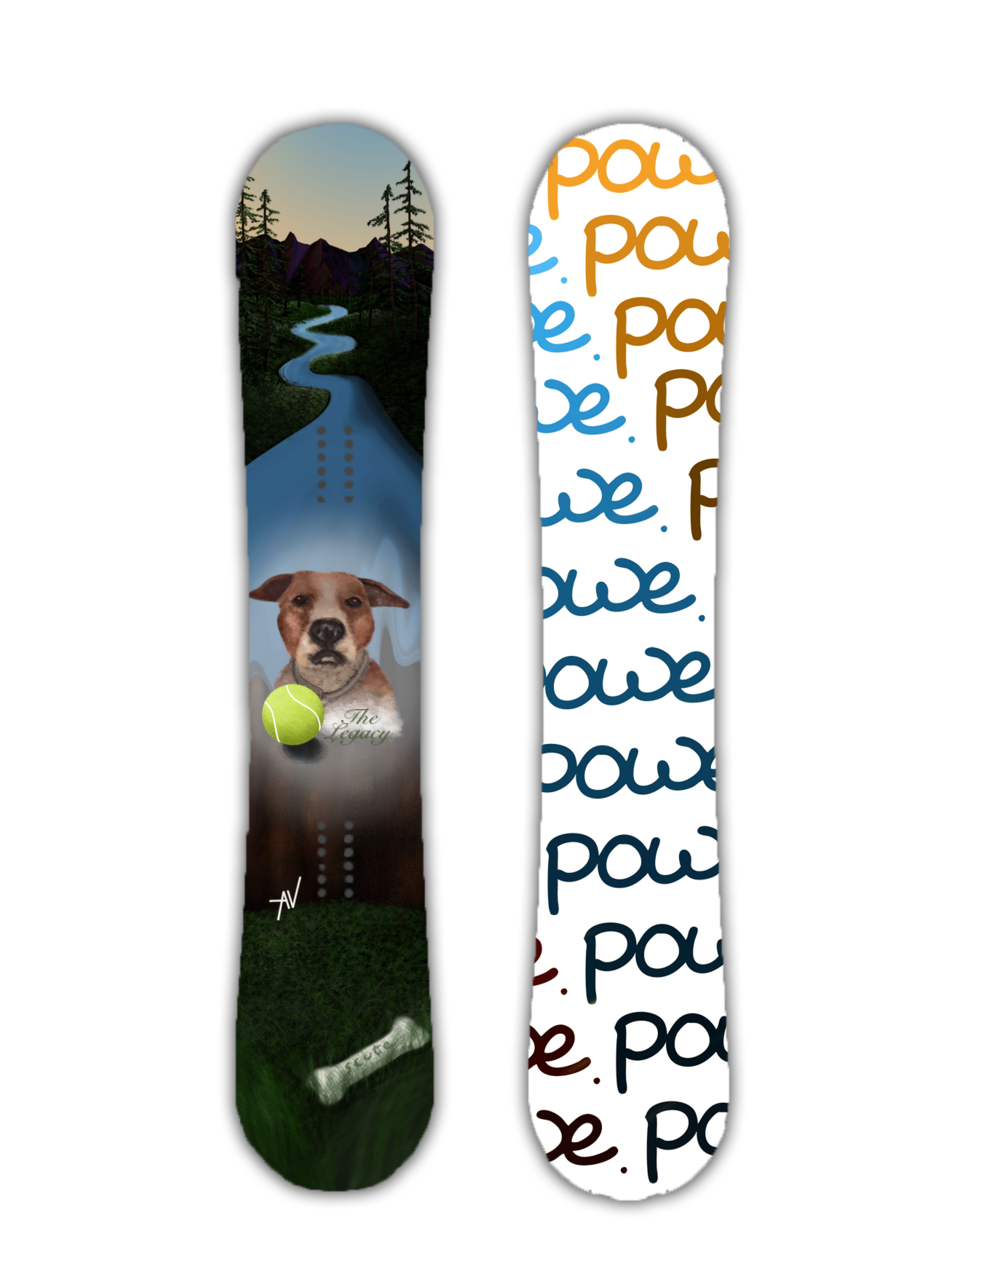 The Legacy, Powe. Snowboards, Stowe, Vt. Custom Snowbaords